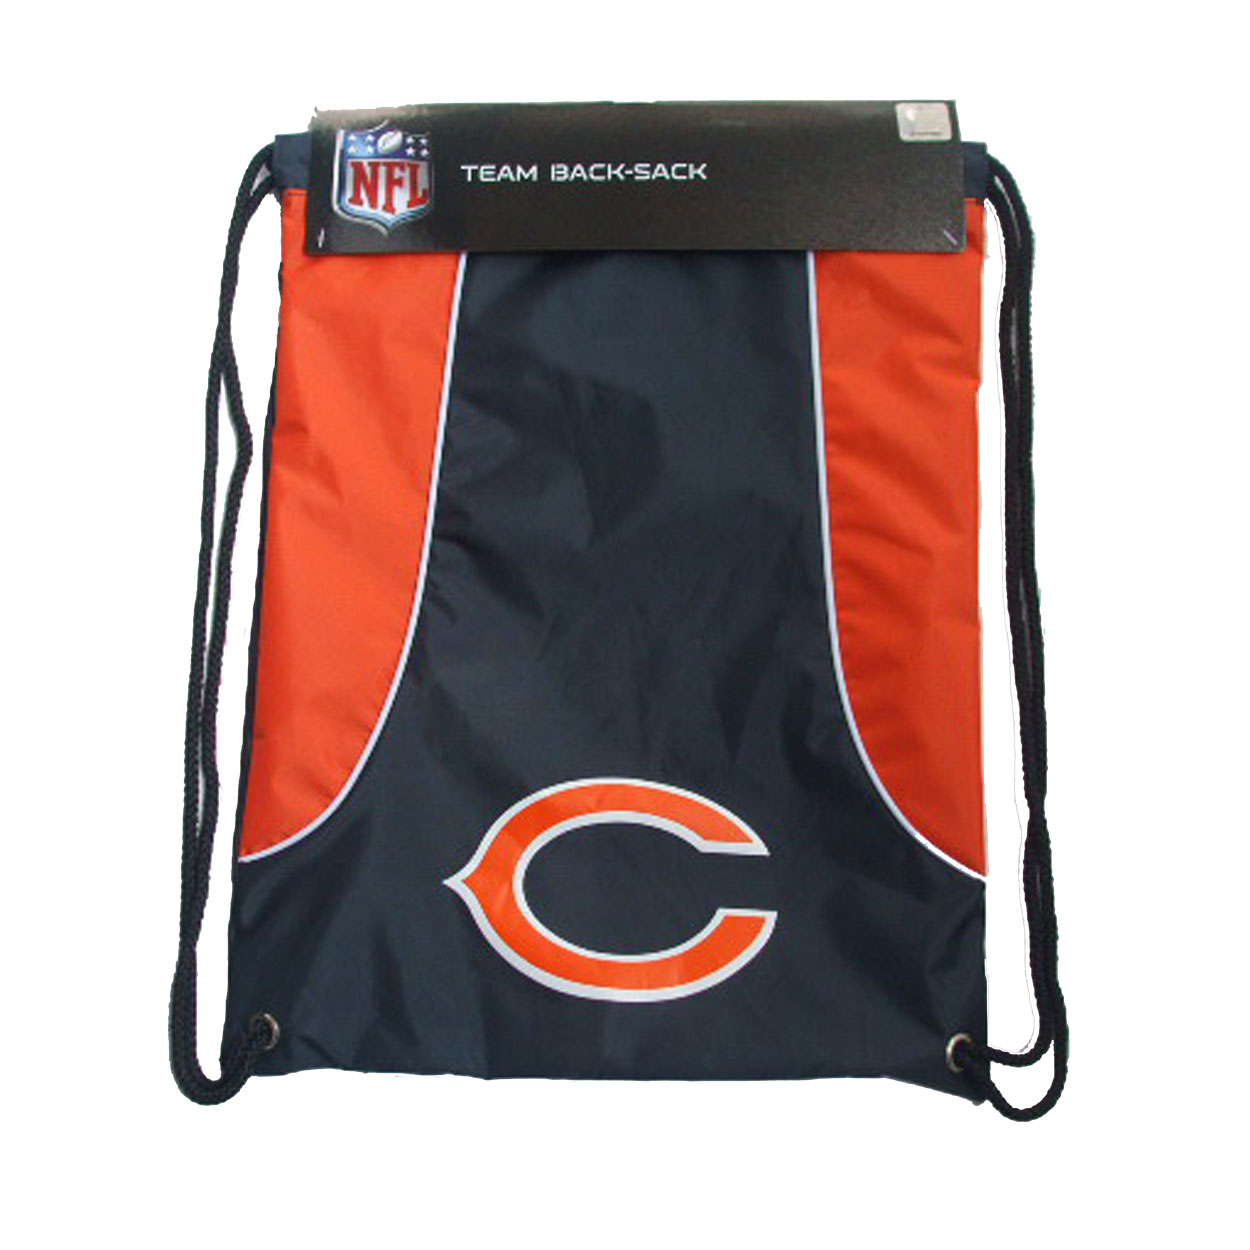 Concept One Football Accessories Sling Backpack